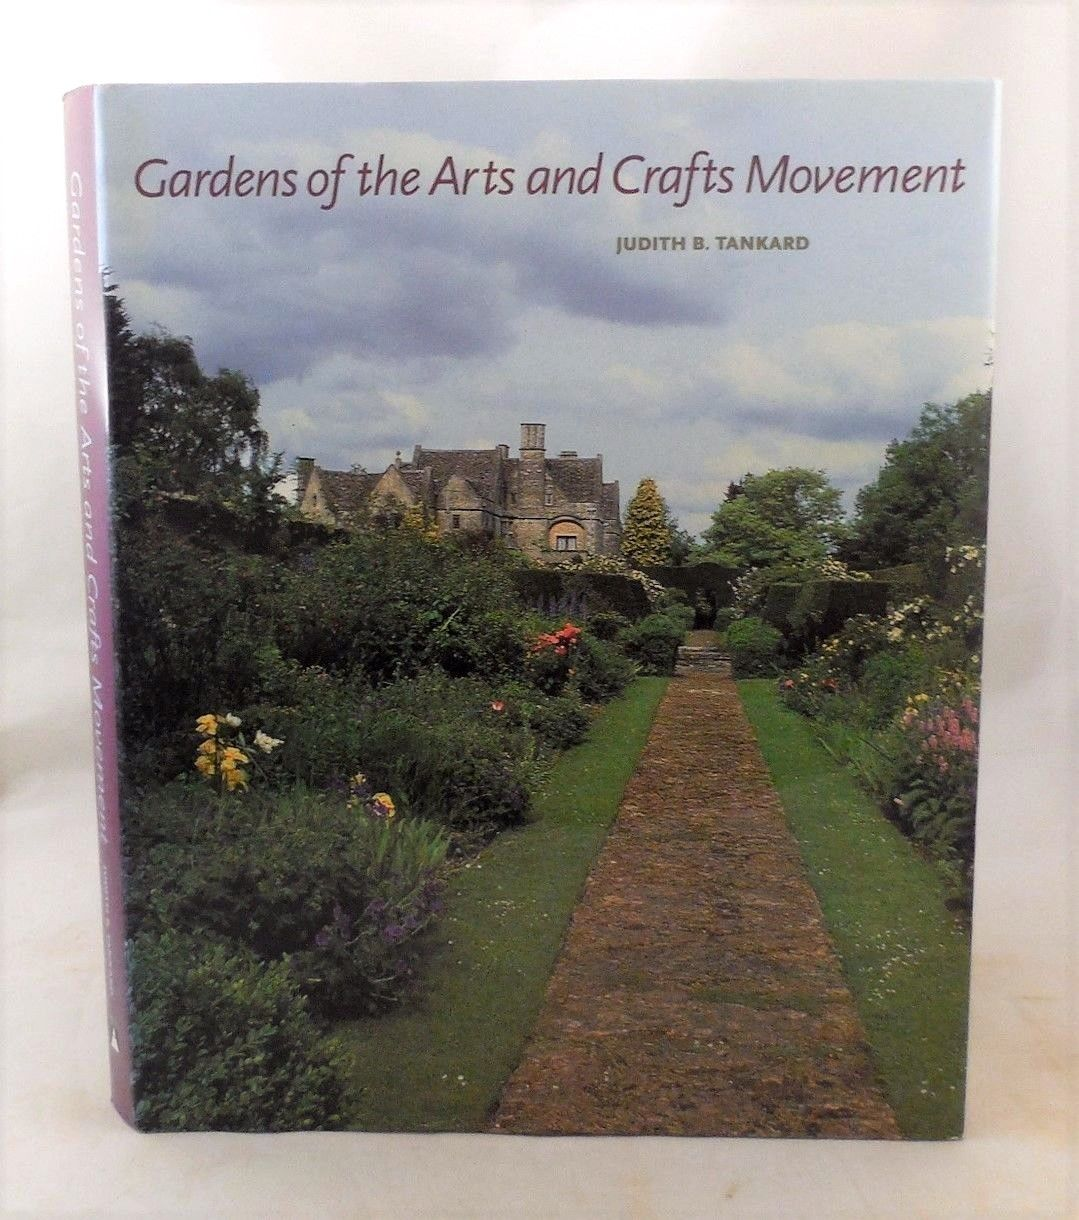 GARDENS OF THE ARTS AND CRAFTS MOVEMENT: REALITY AND IMAGINATION 2004 J Tankard